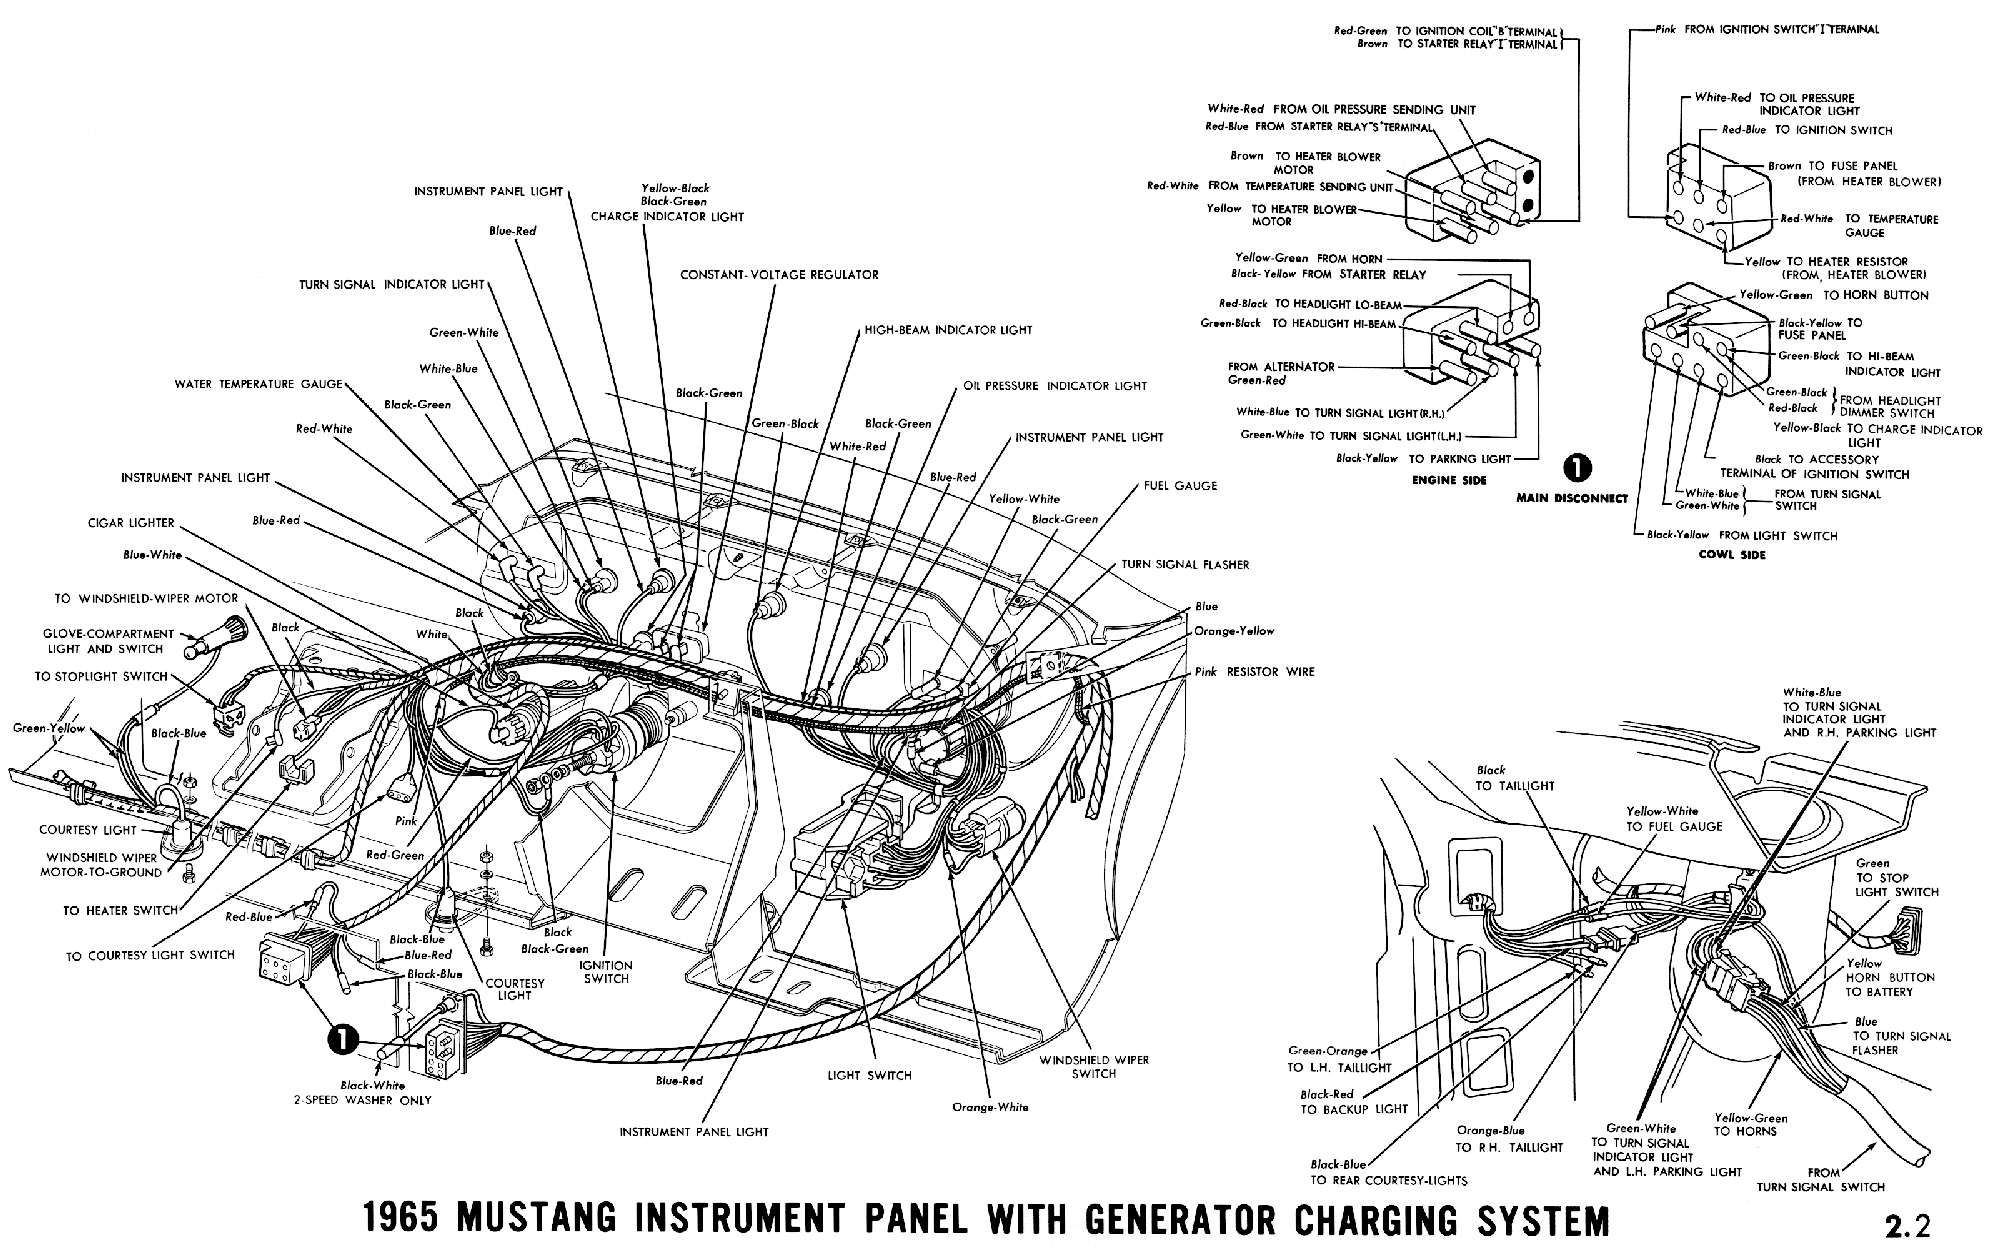 Panel Wiring Diagram Of An Alternator Kenworth T680 Headlight 1965 Mustang Instrument With Charging